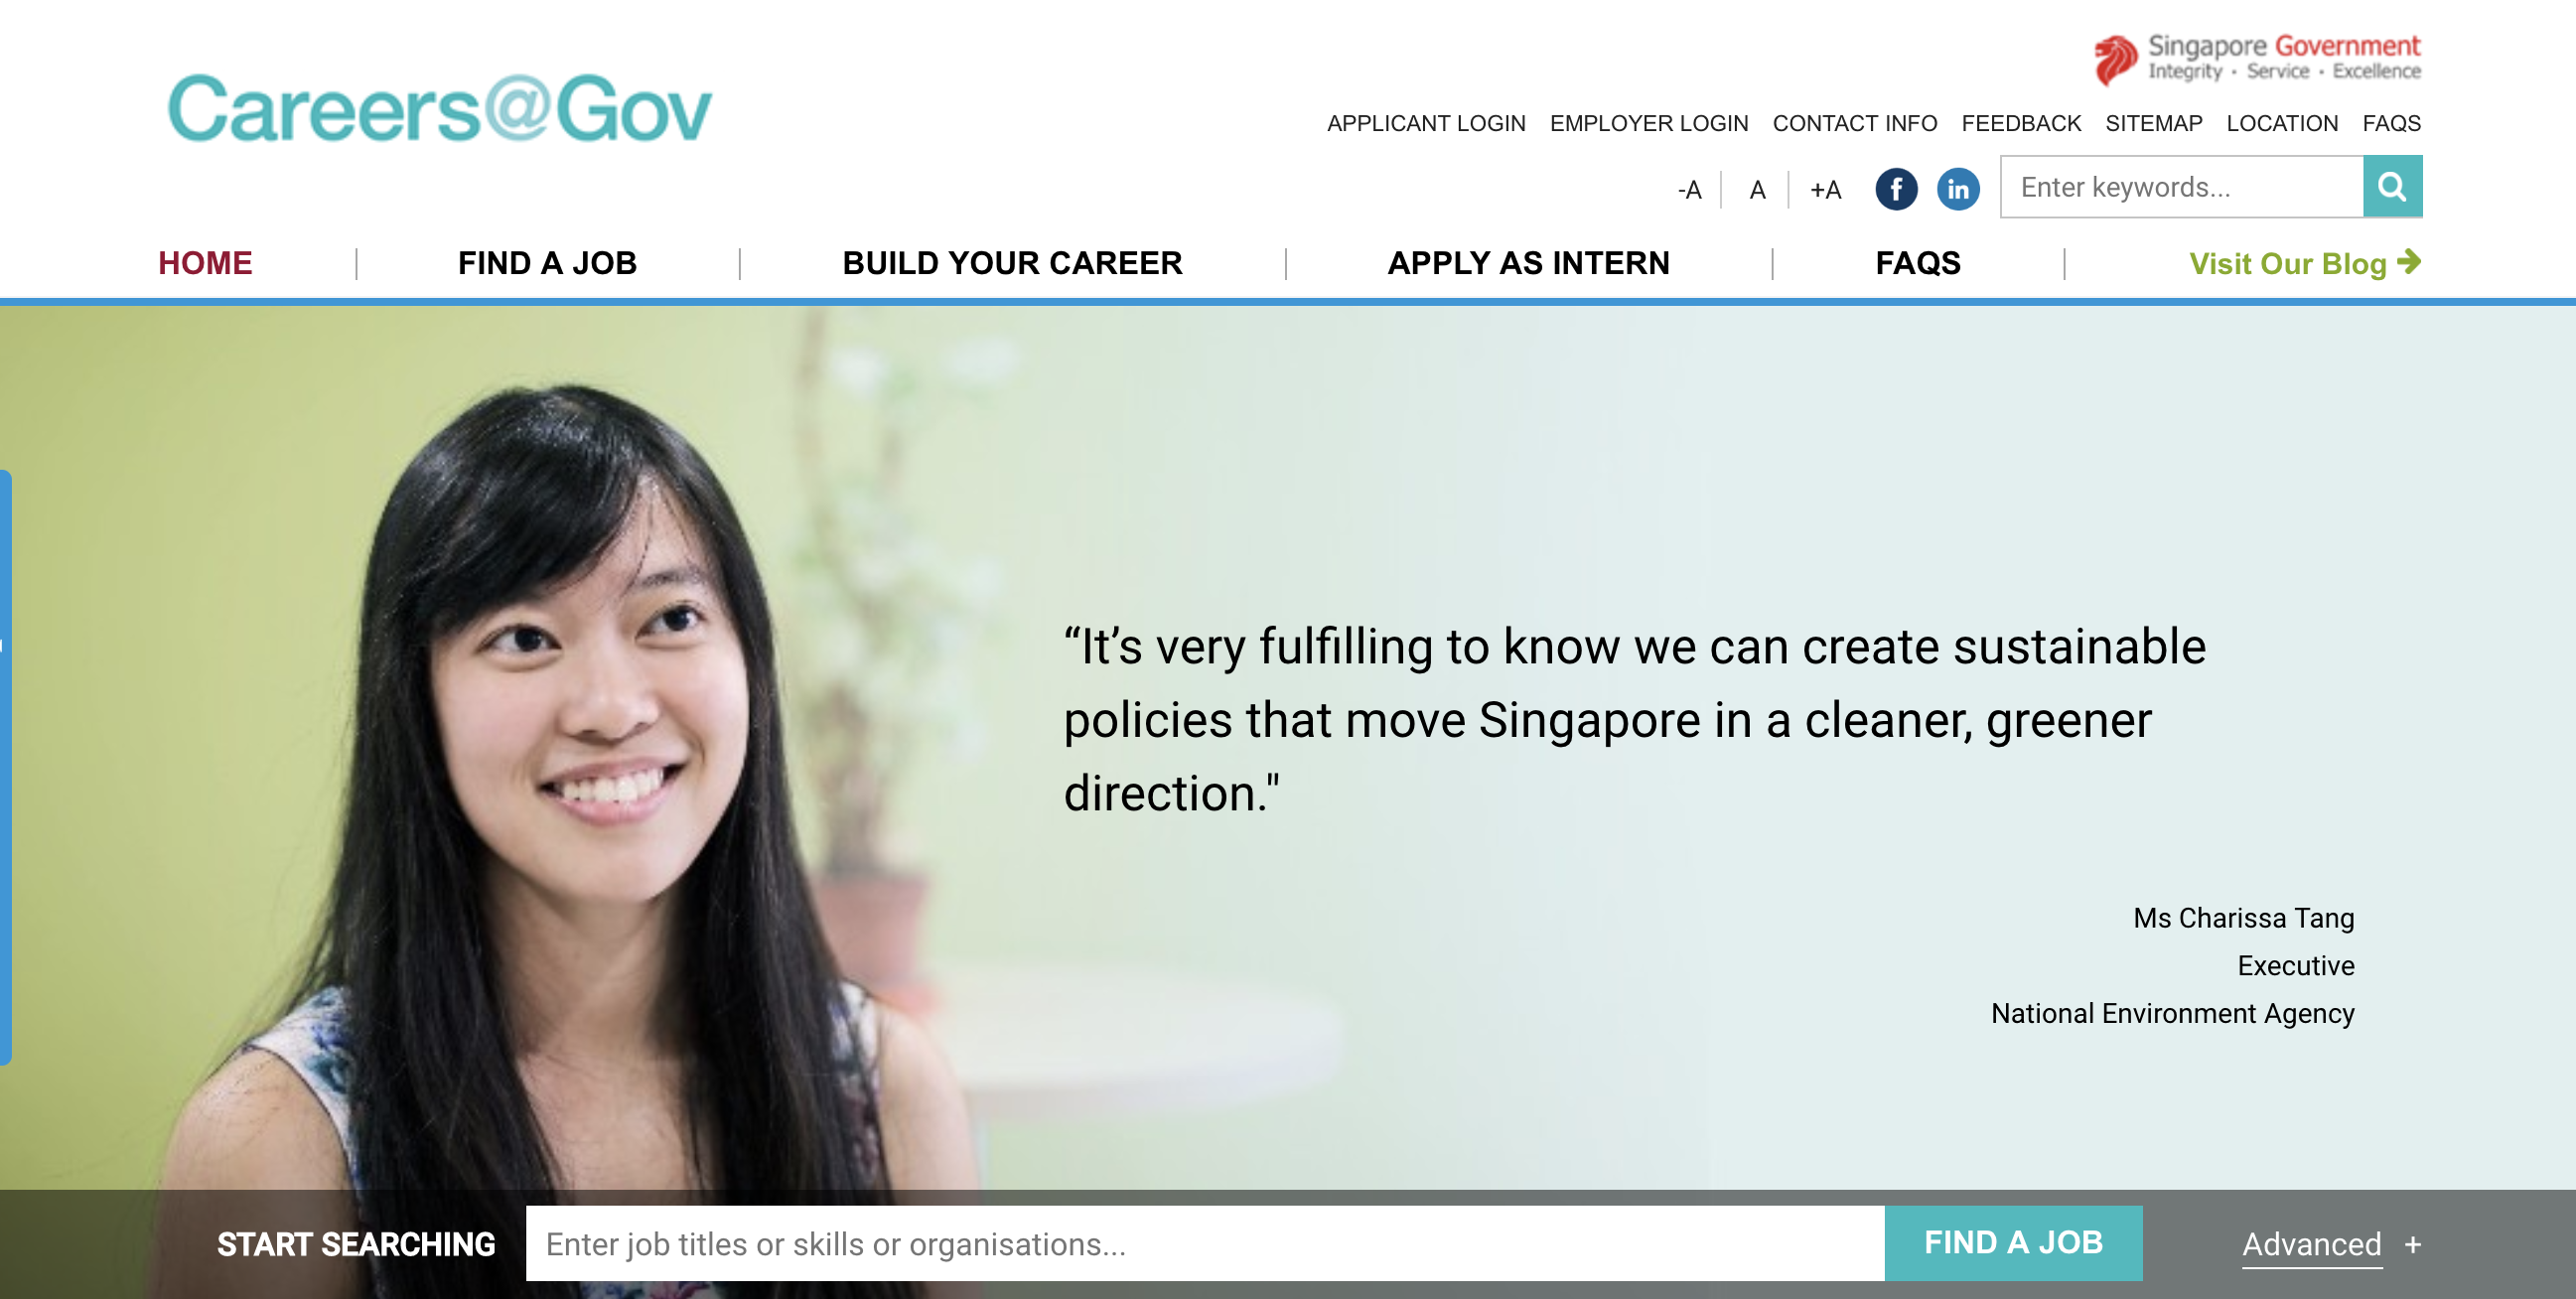 Photo: Screenshot of Career@Gov